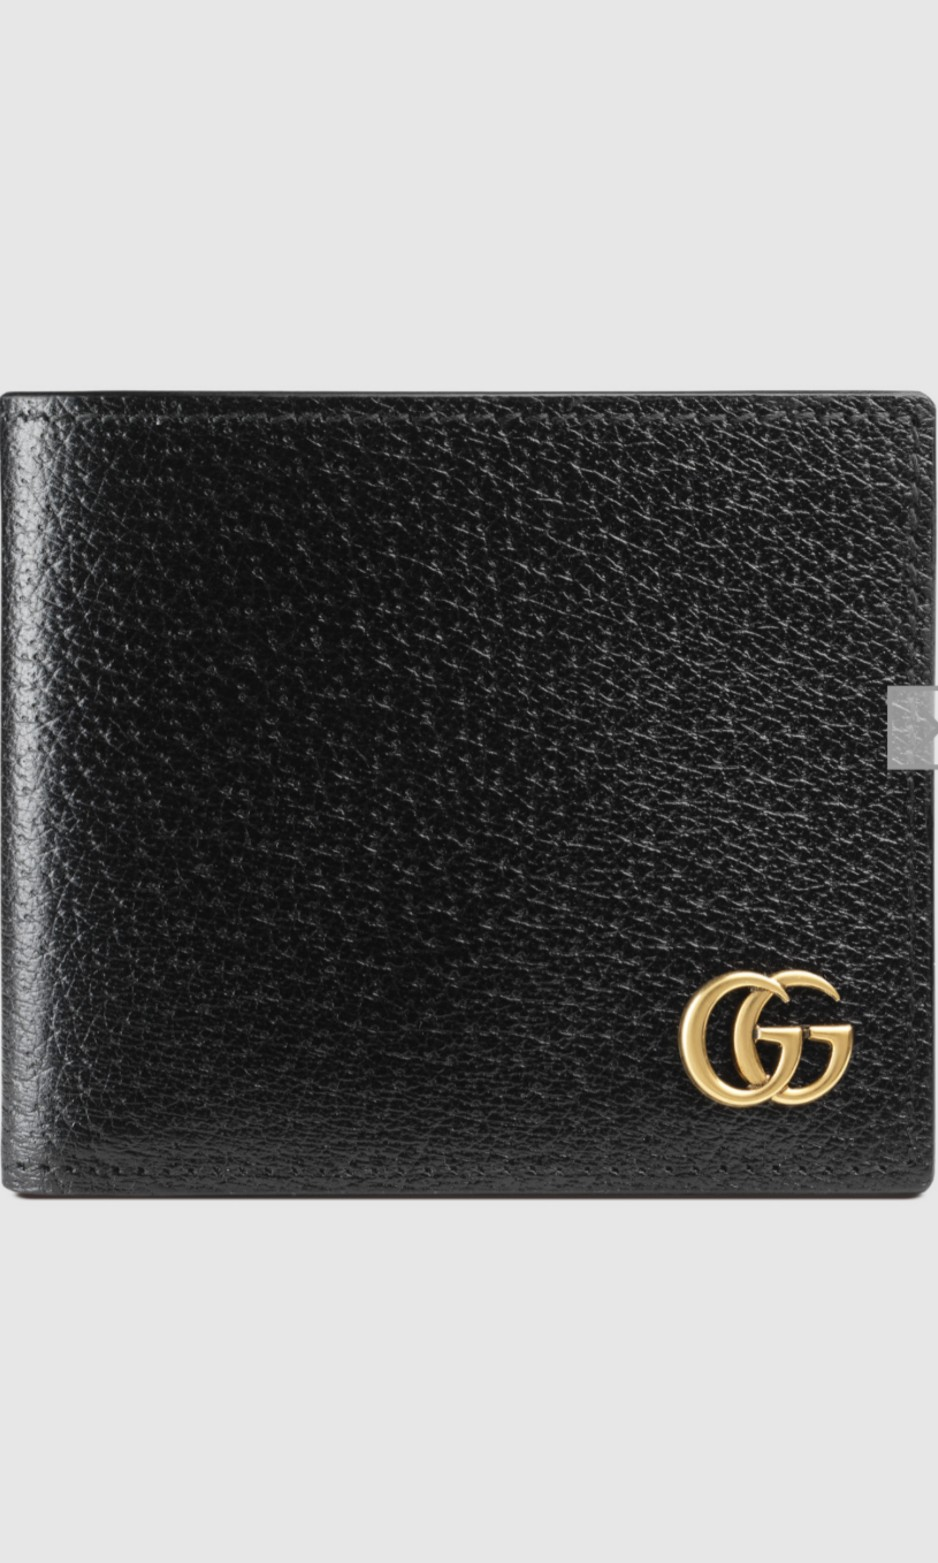 ec9a658a9e818f Brand New Gucci Mens Wallet, Luxury, Bags & Wallets, Wallets on ...